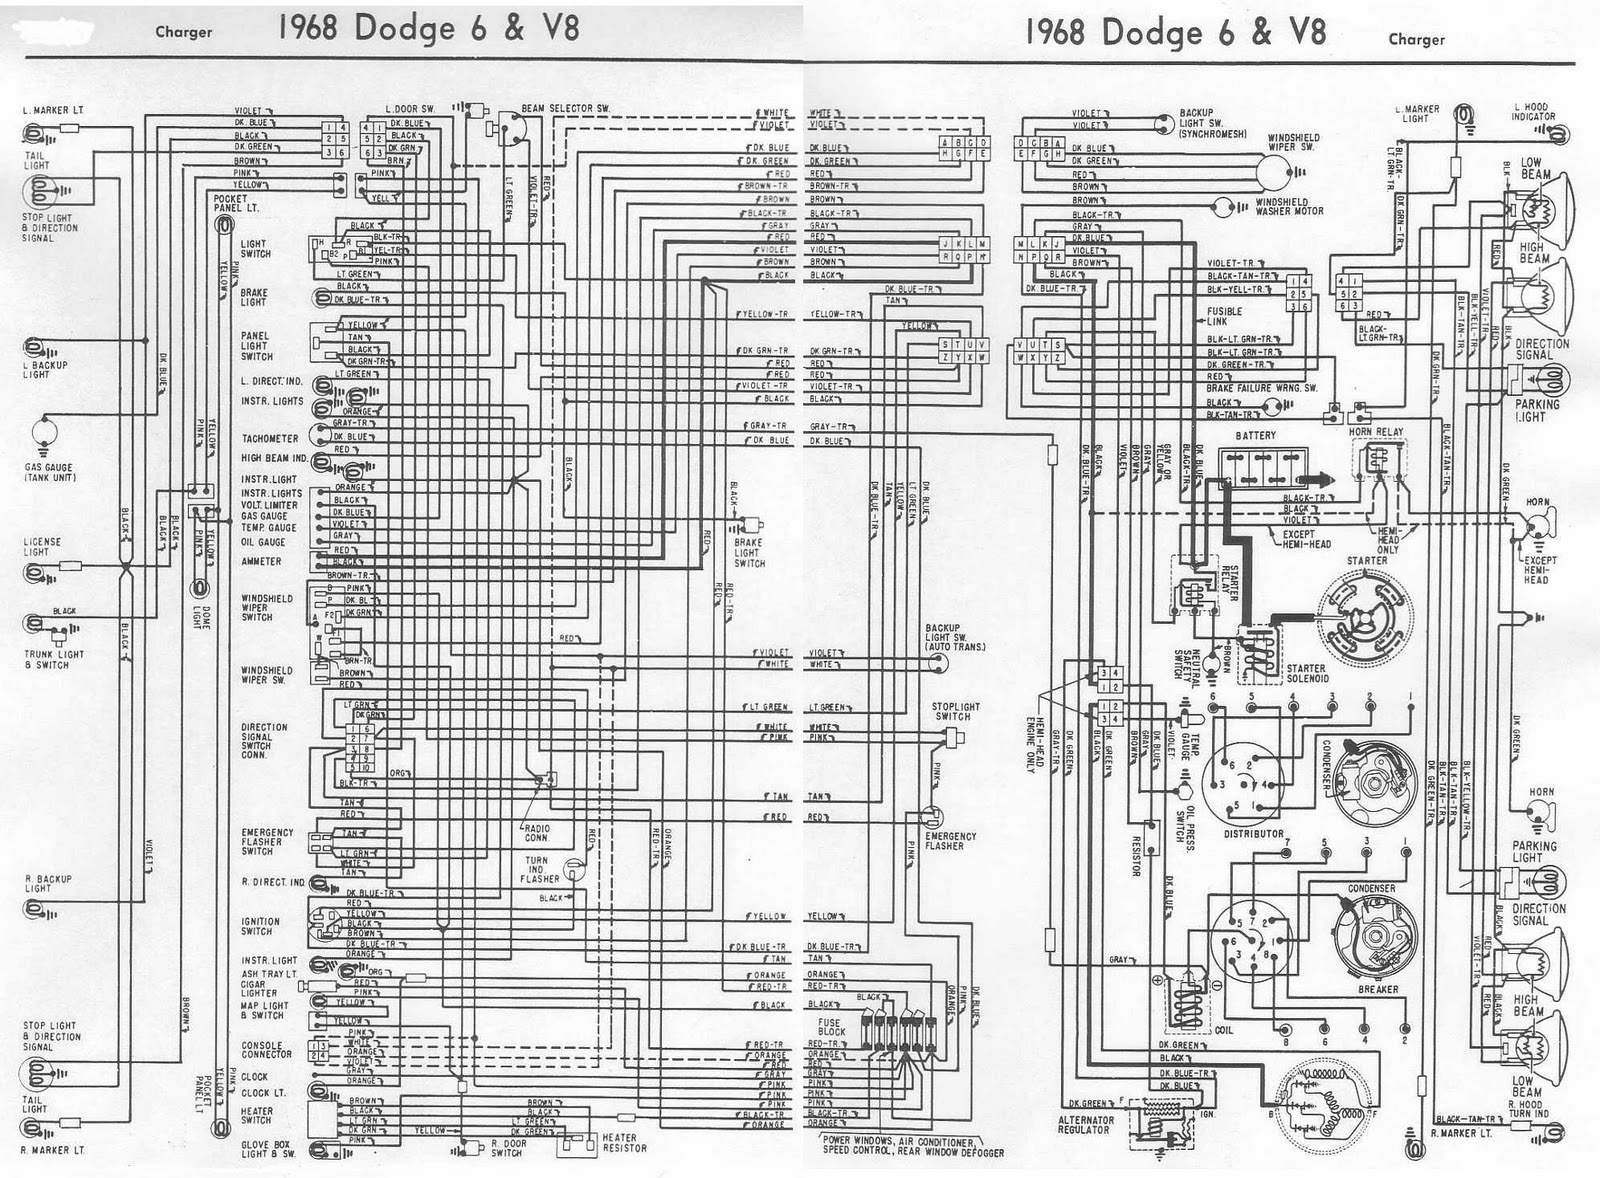 dodge van wiring diagram wiring diagrams dodge charger 1968 6 and v8 complete electrical